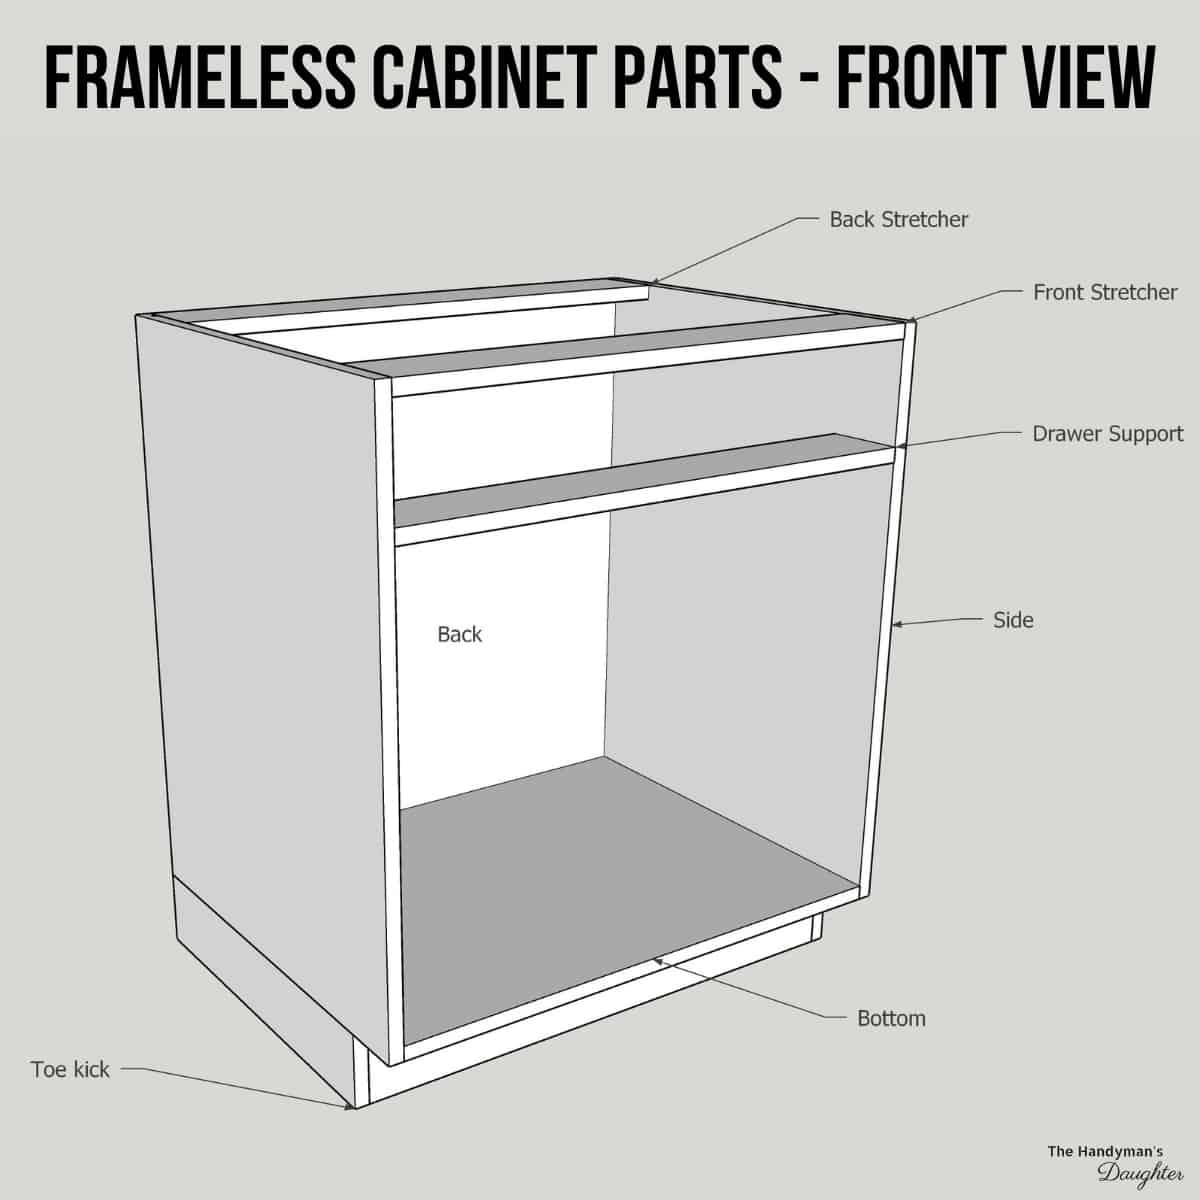 parts of a cabinet (frameless) -  front view